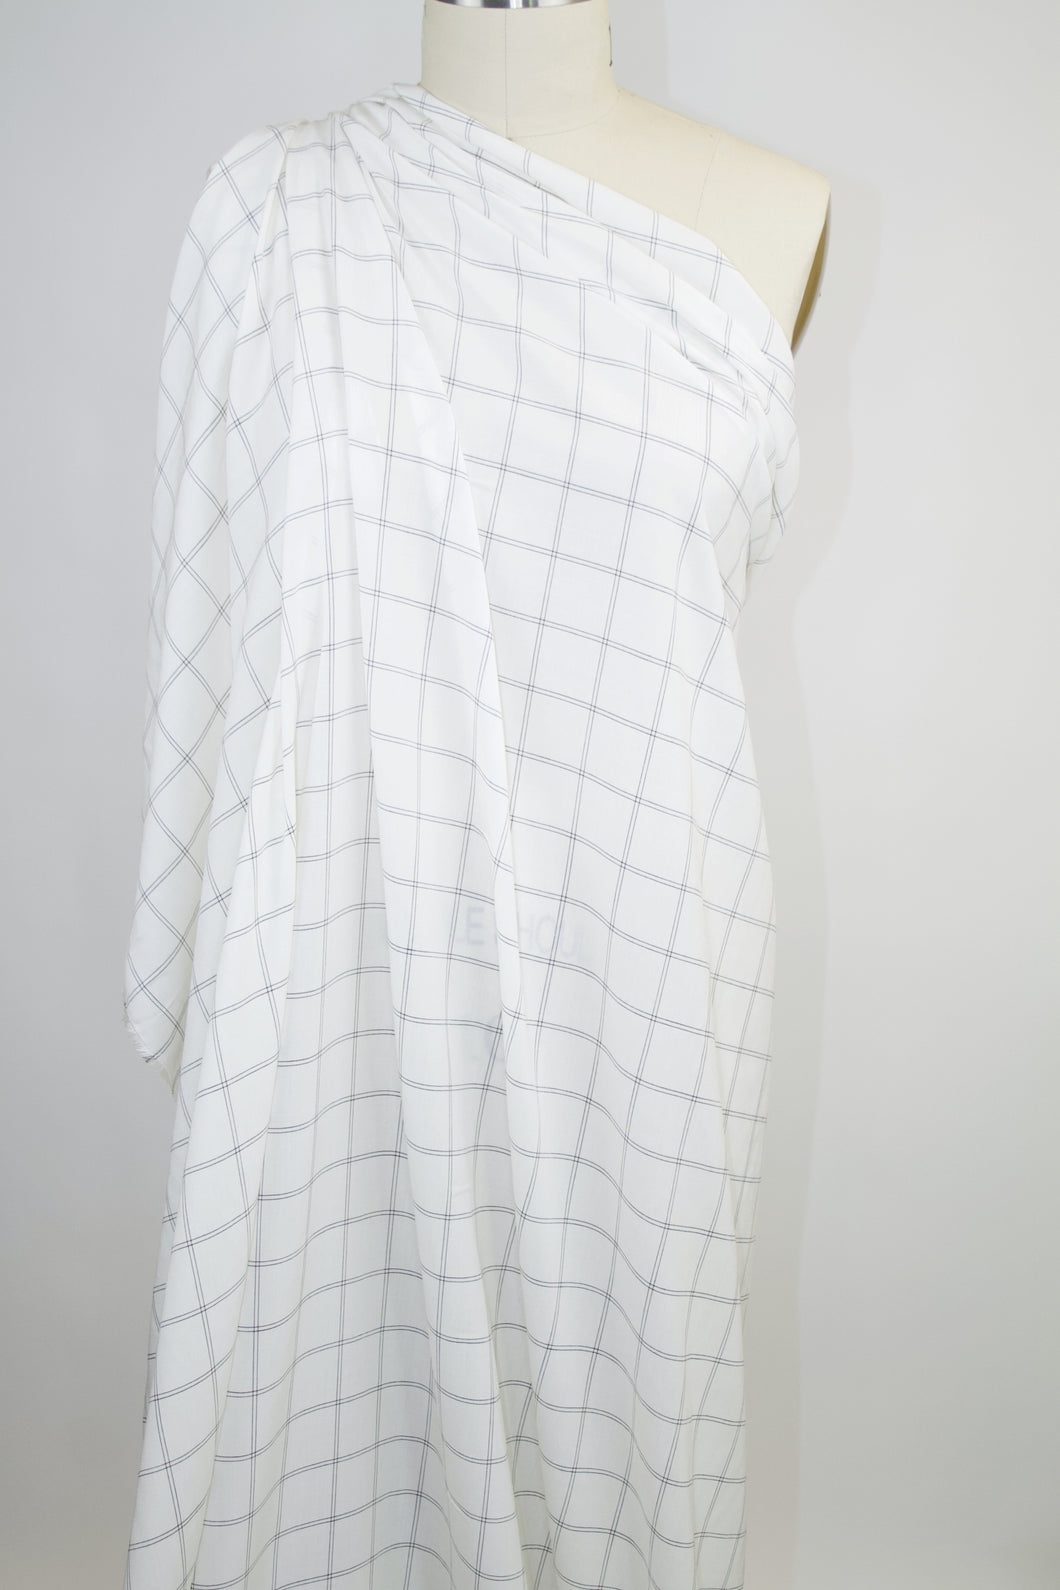 Italian Windowpane Plaid Soft Cotton Lawn - Black on White